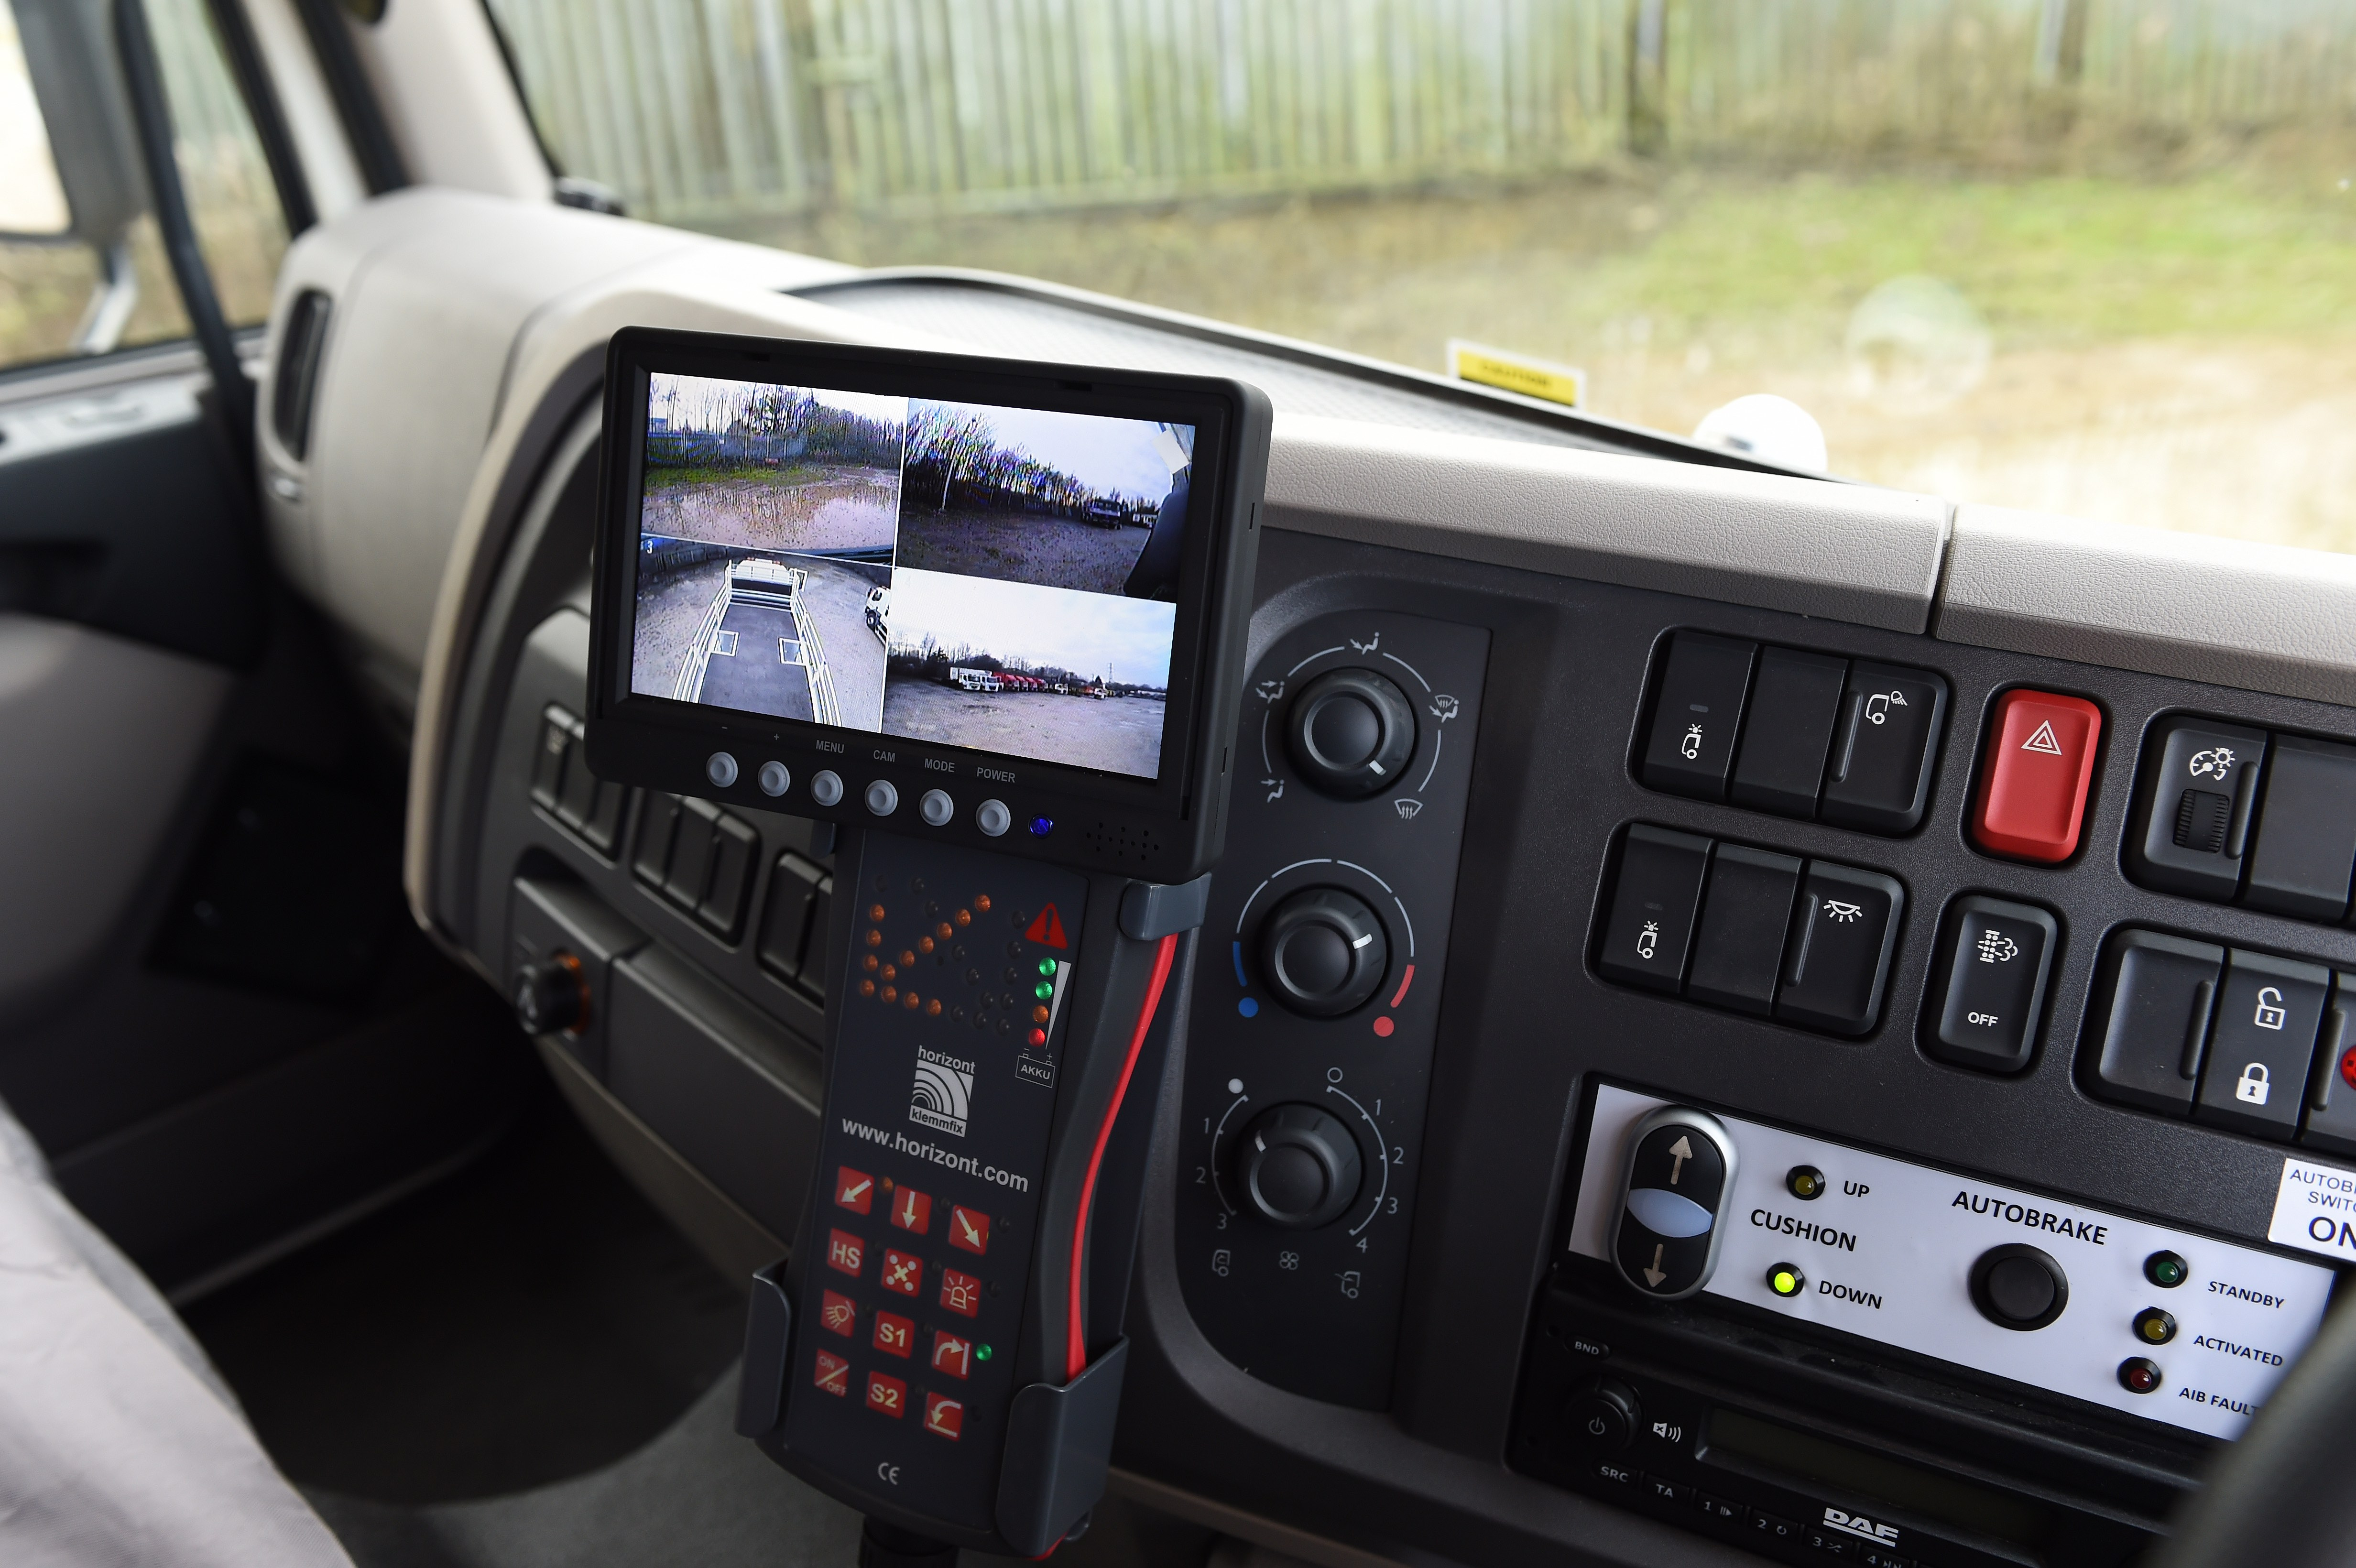 Blakedale's new multi-camera system boosts Crash Cushion safety